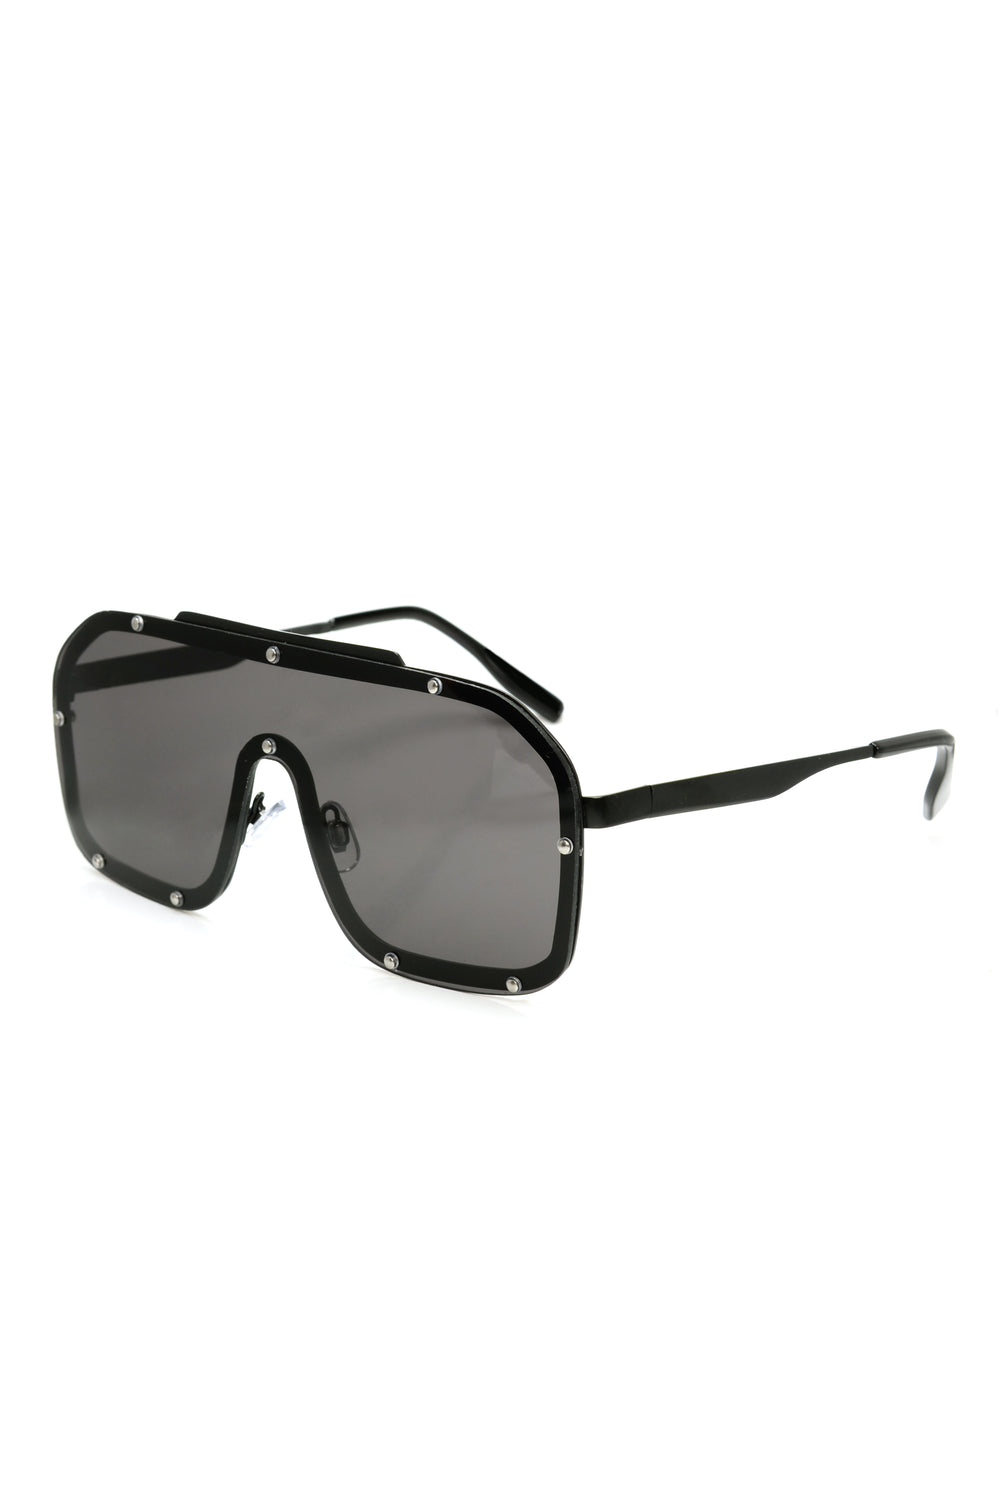 Dezzi Shield Sunglasses - Black